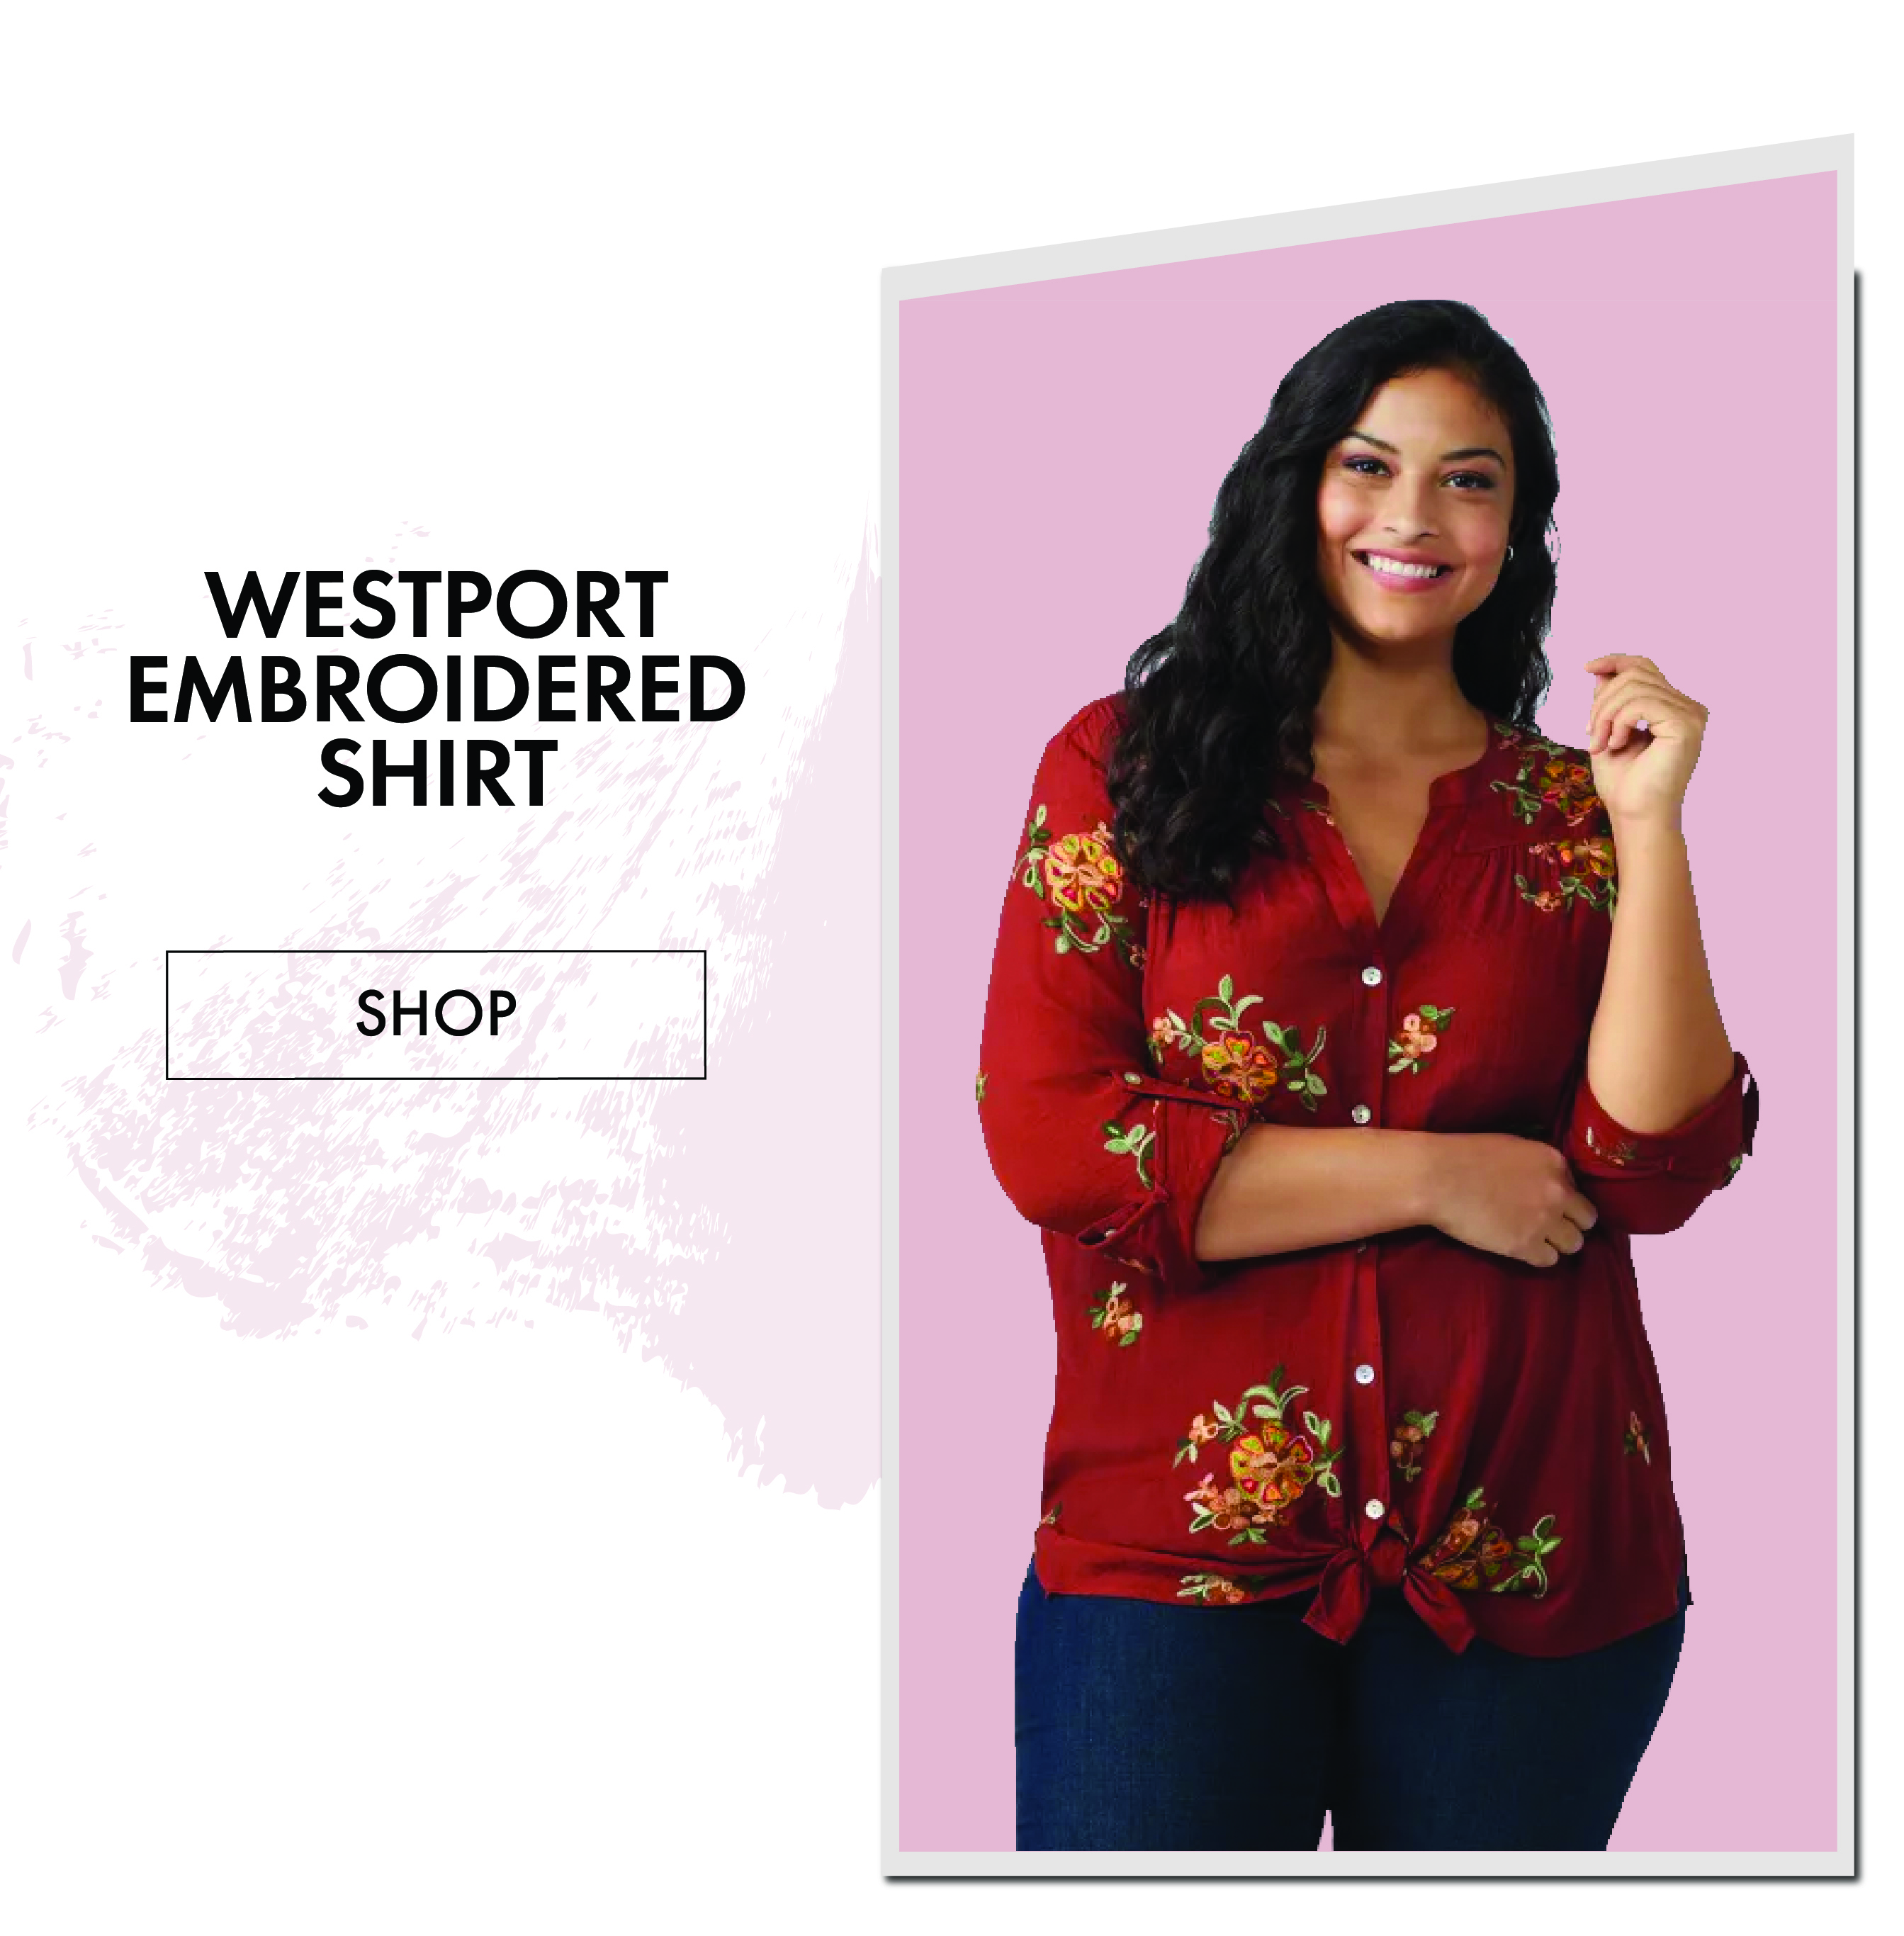 Westport Embroidered Shirt in Plus